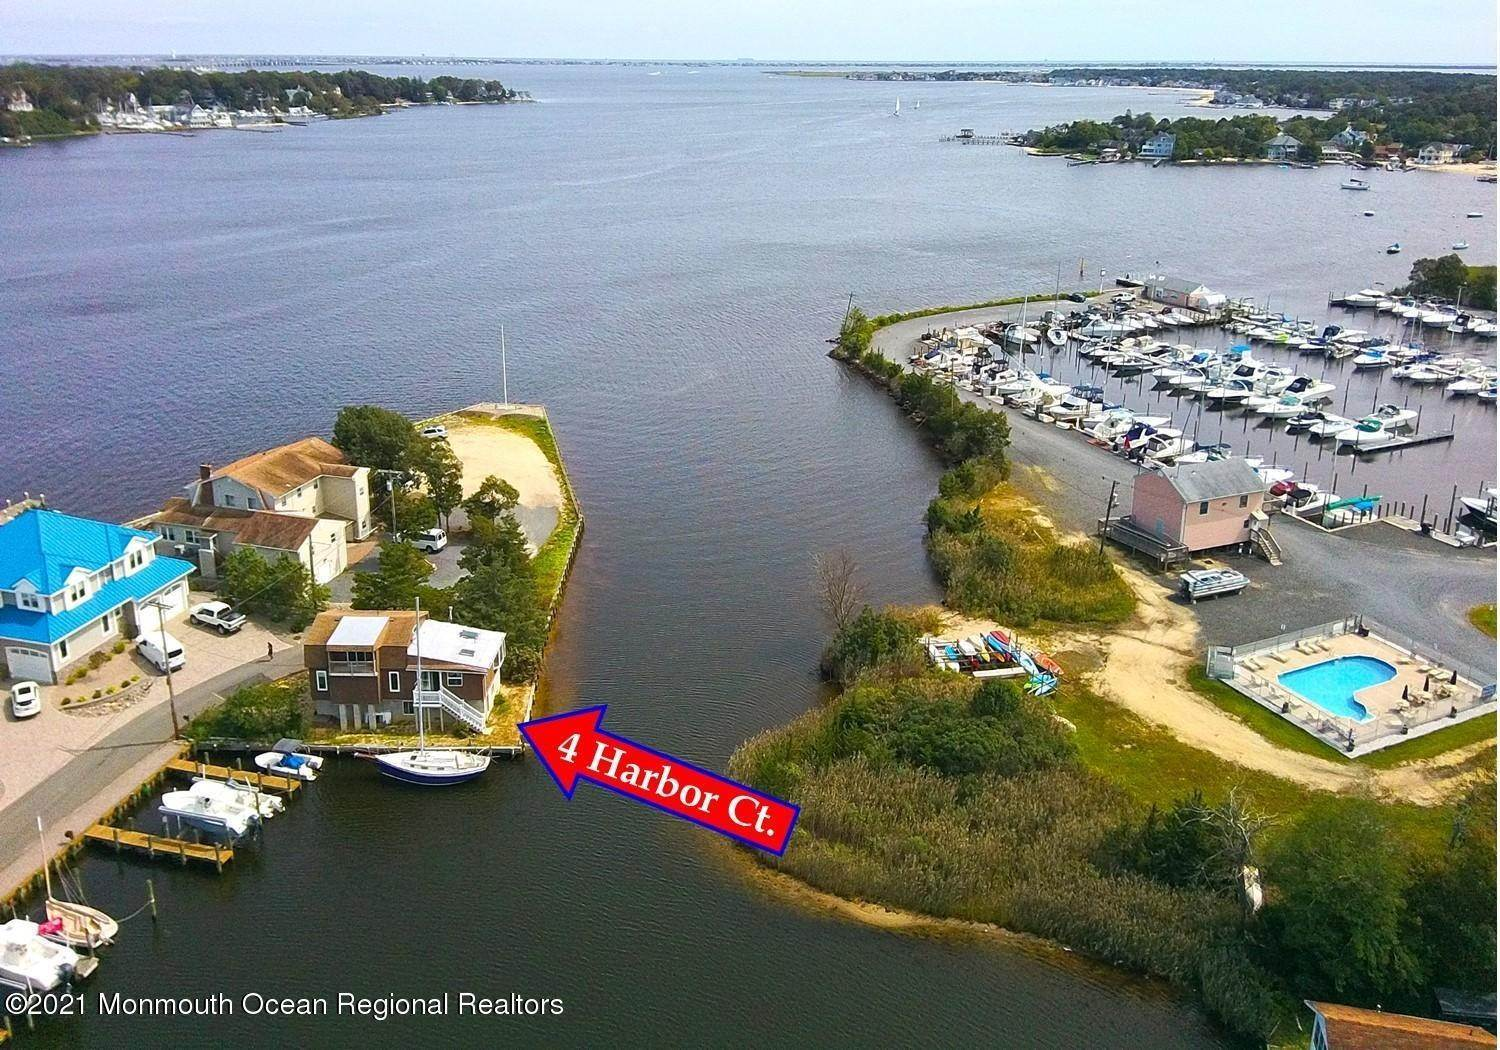 Property for Sale at 4 Harbor Court Pine Beach, New Jersey 08741 United States